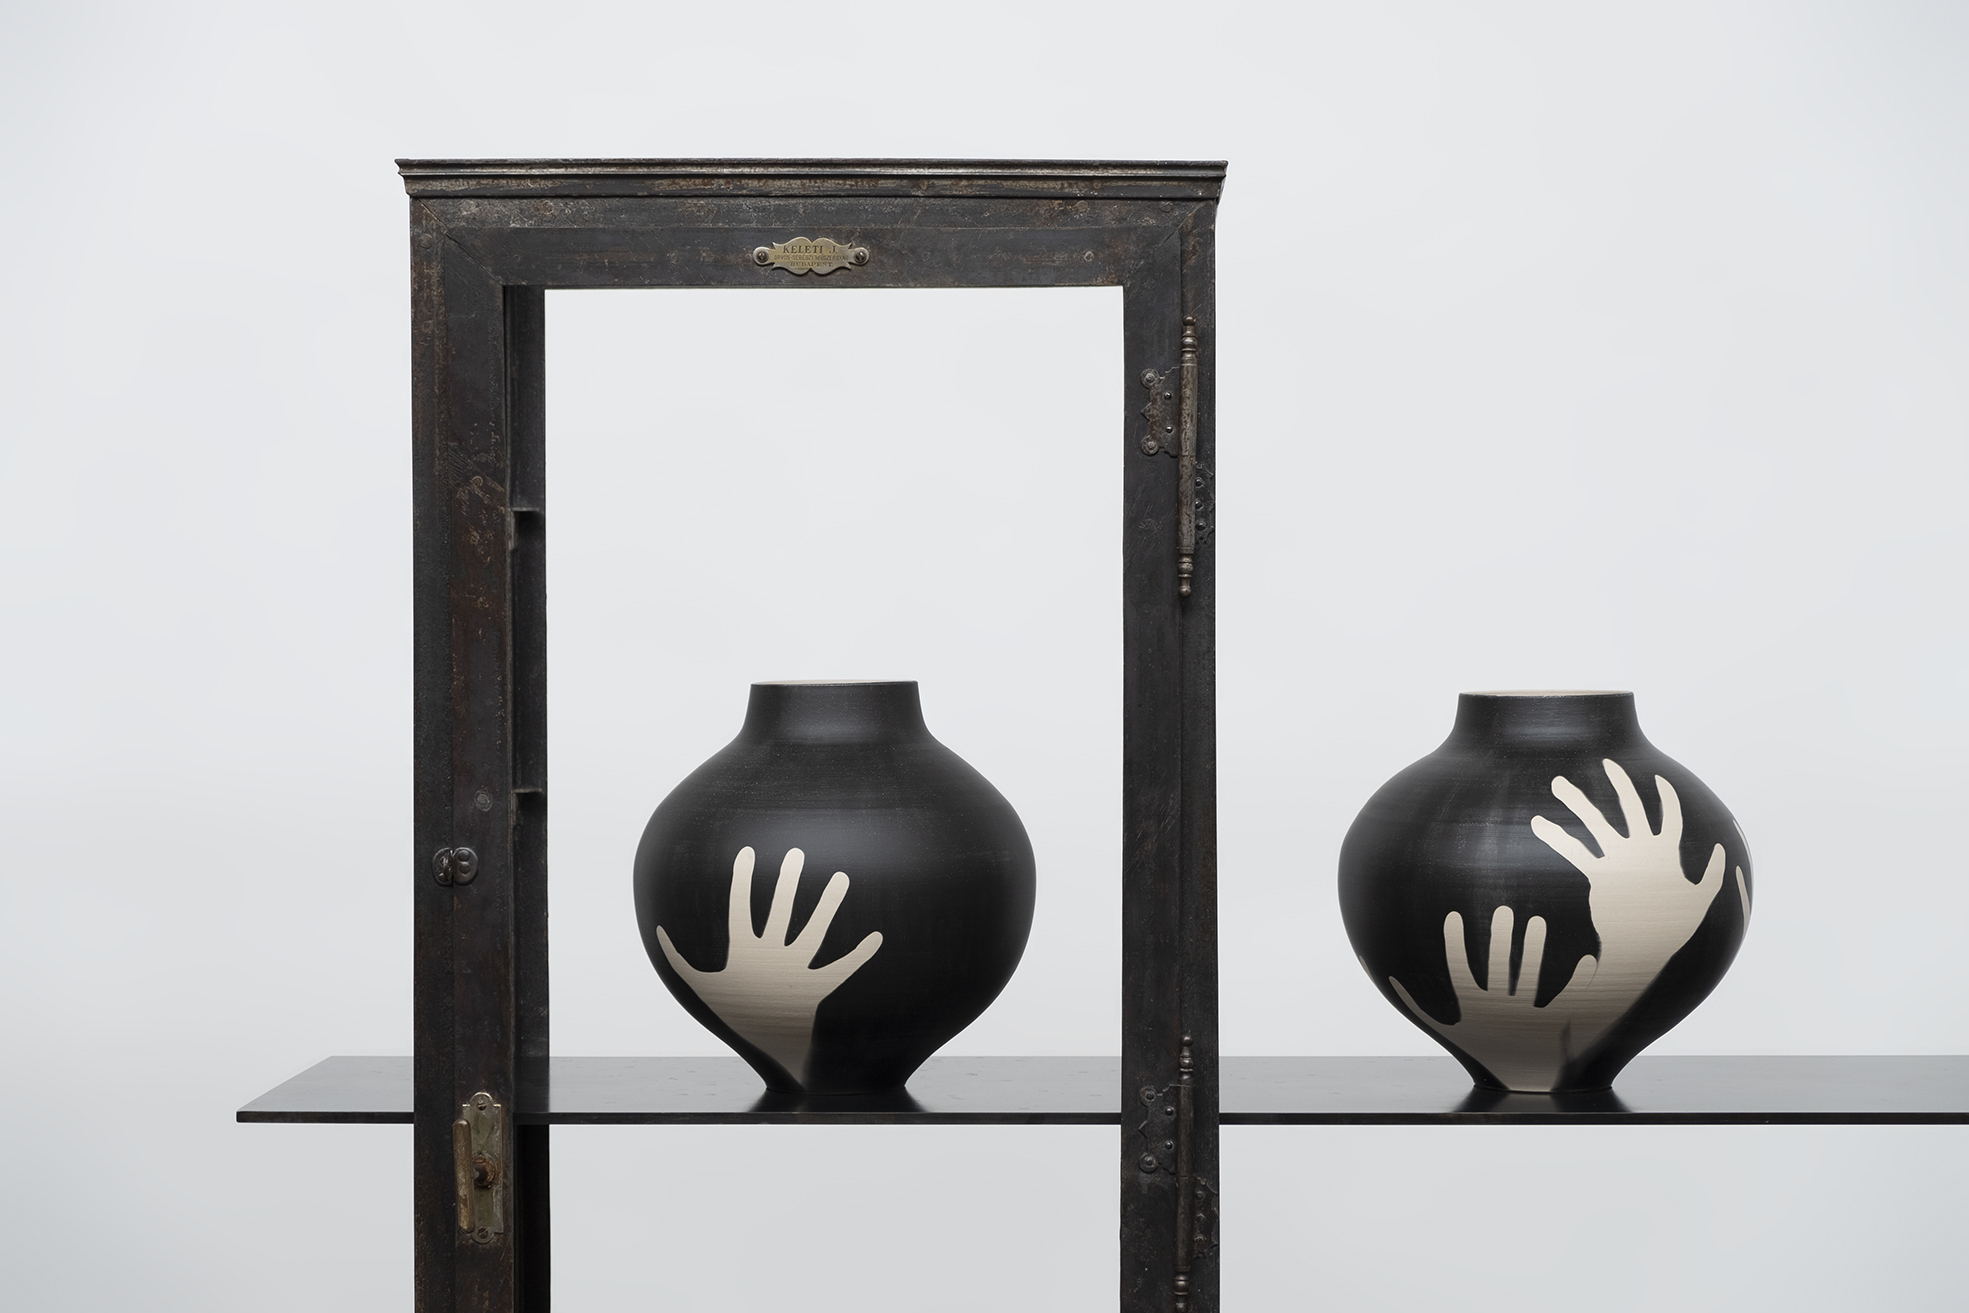 Two Hold Me vases placed on furniture by James Plumb